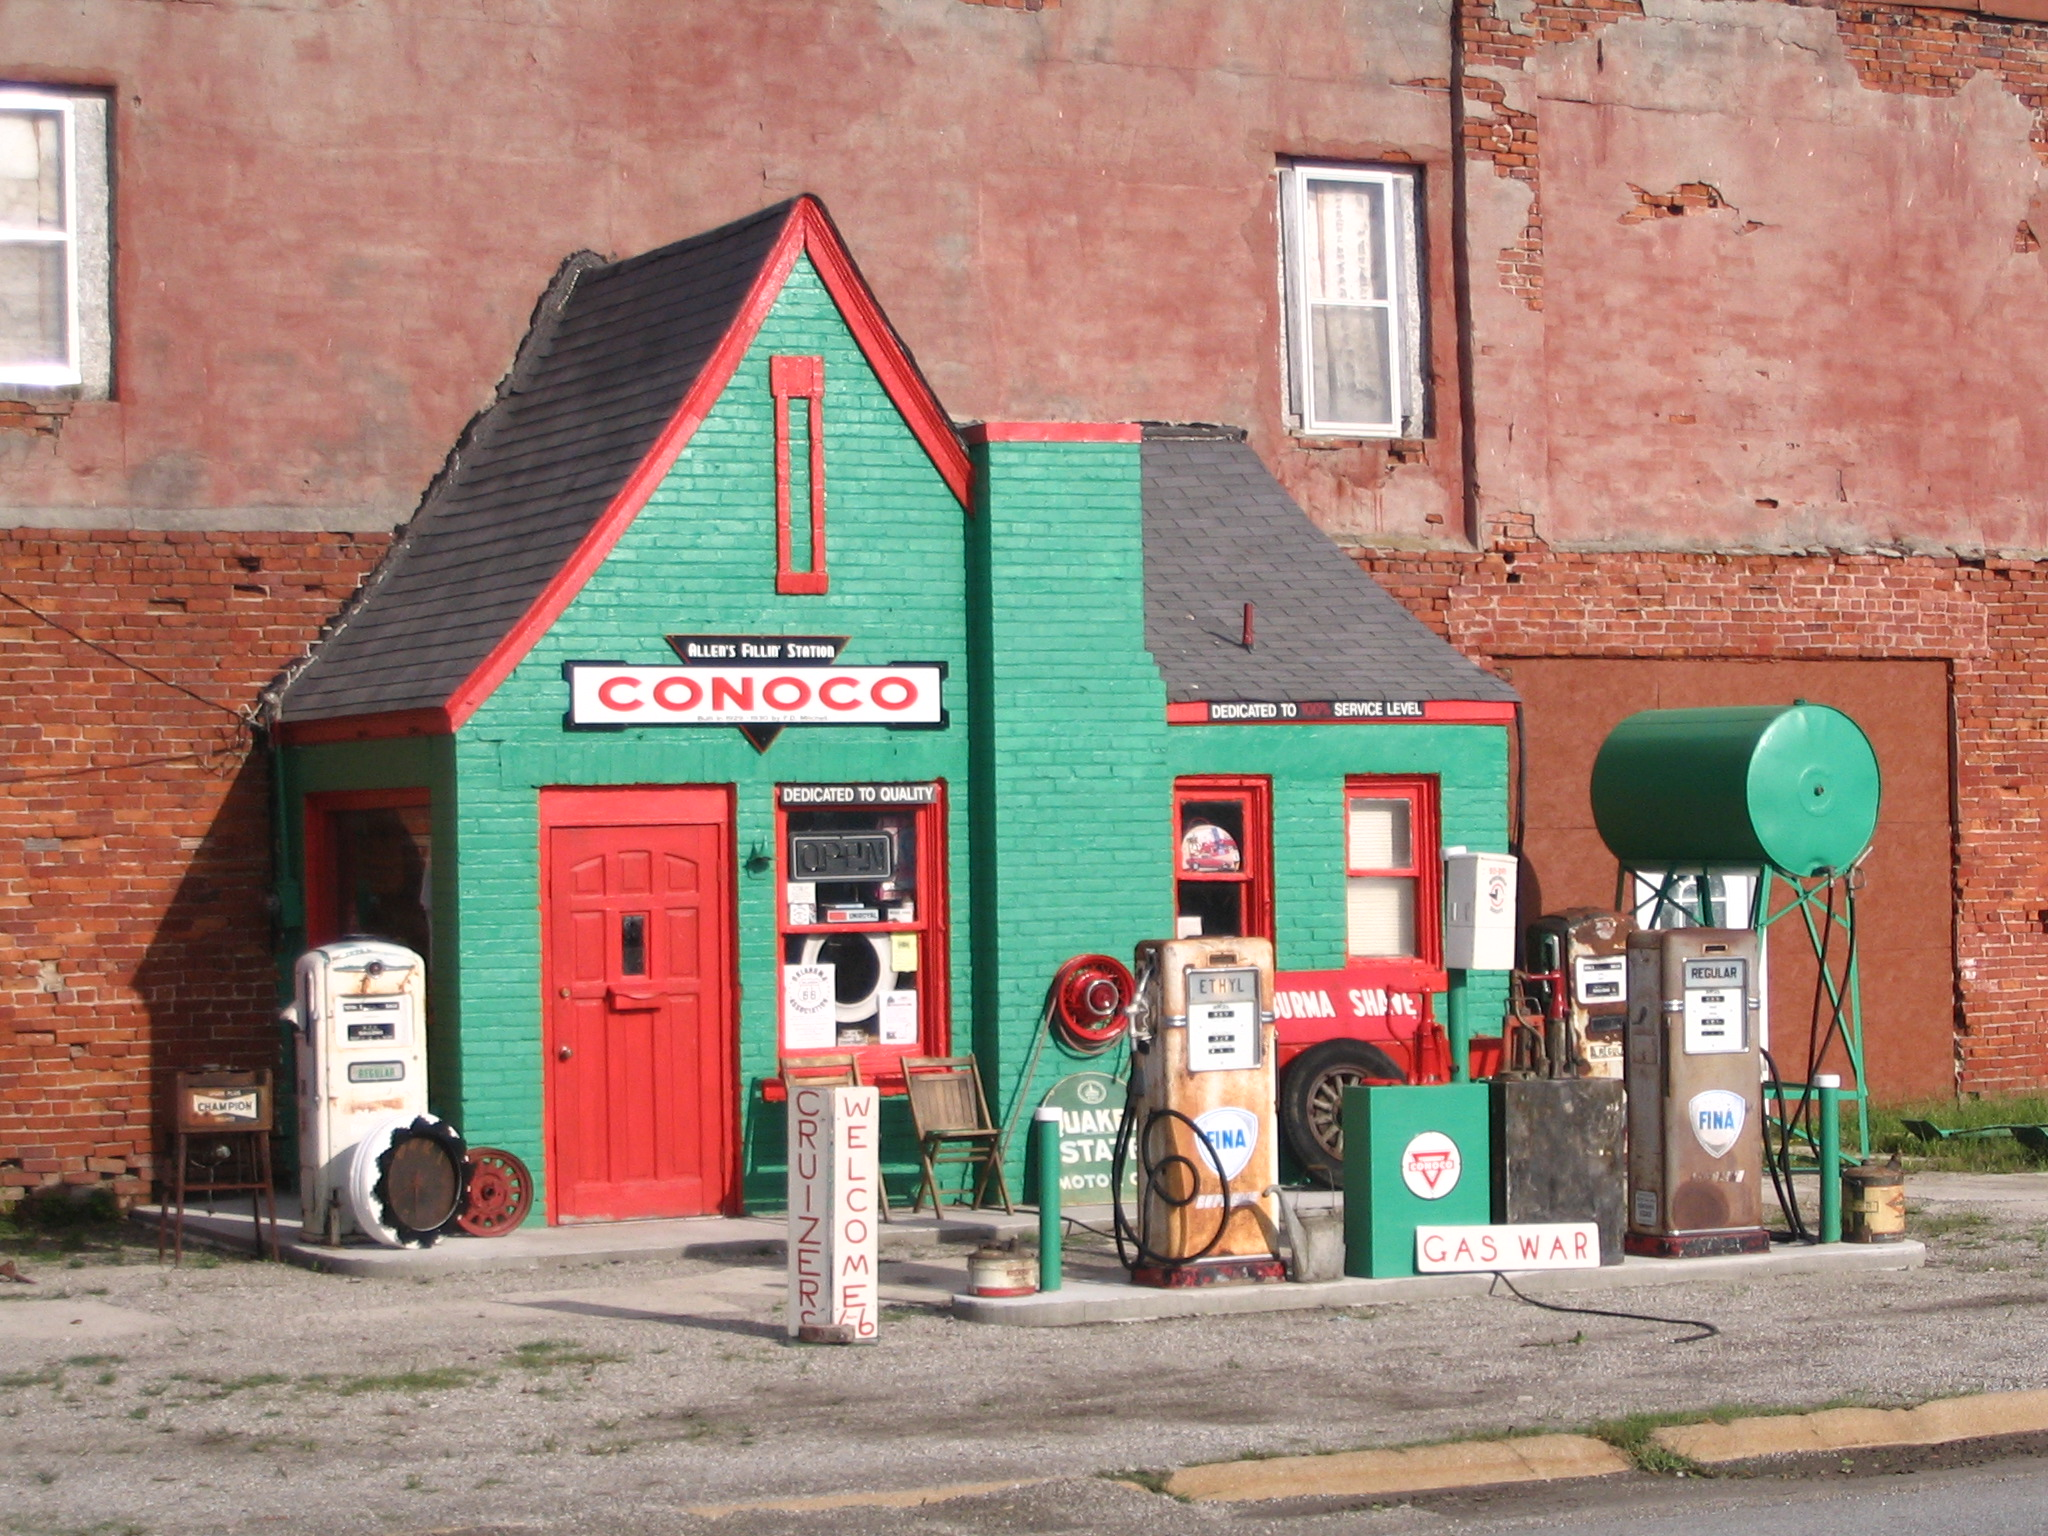 File:Old Conoco Station - Commerce.jpg - Wikimedia Commons